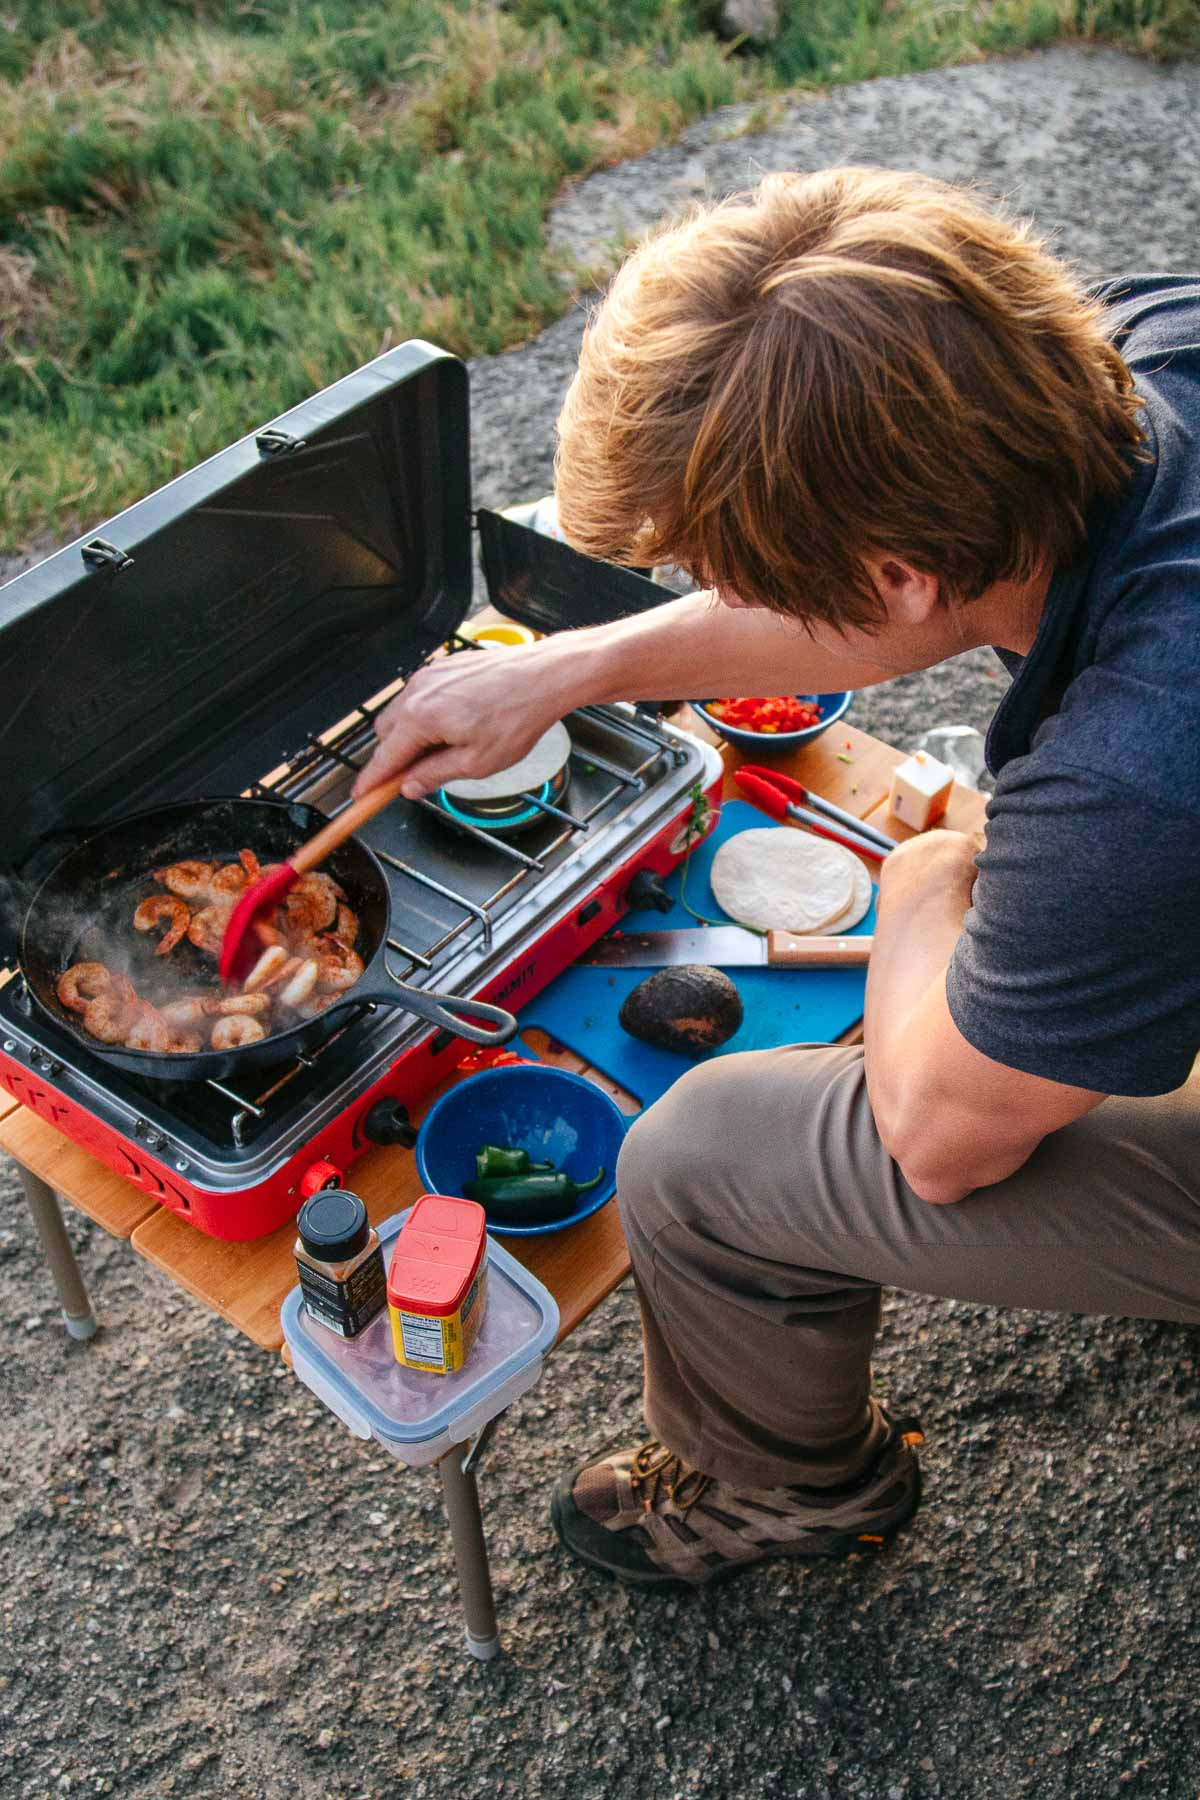 Michael cooking shrimp in a cast iron skillet on a camp stove.